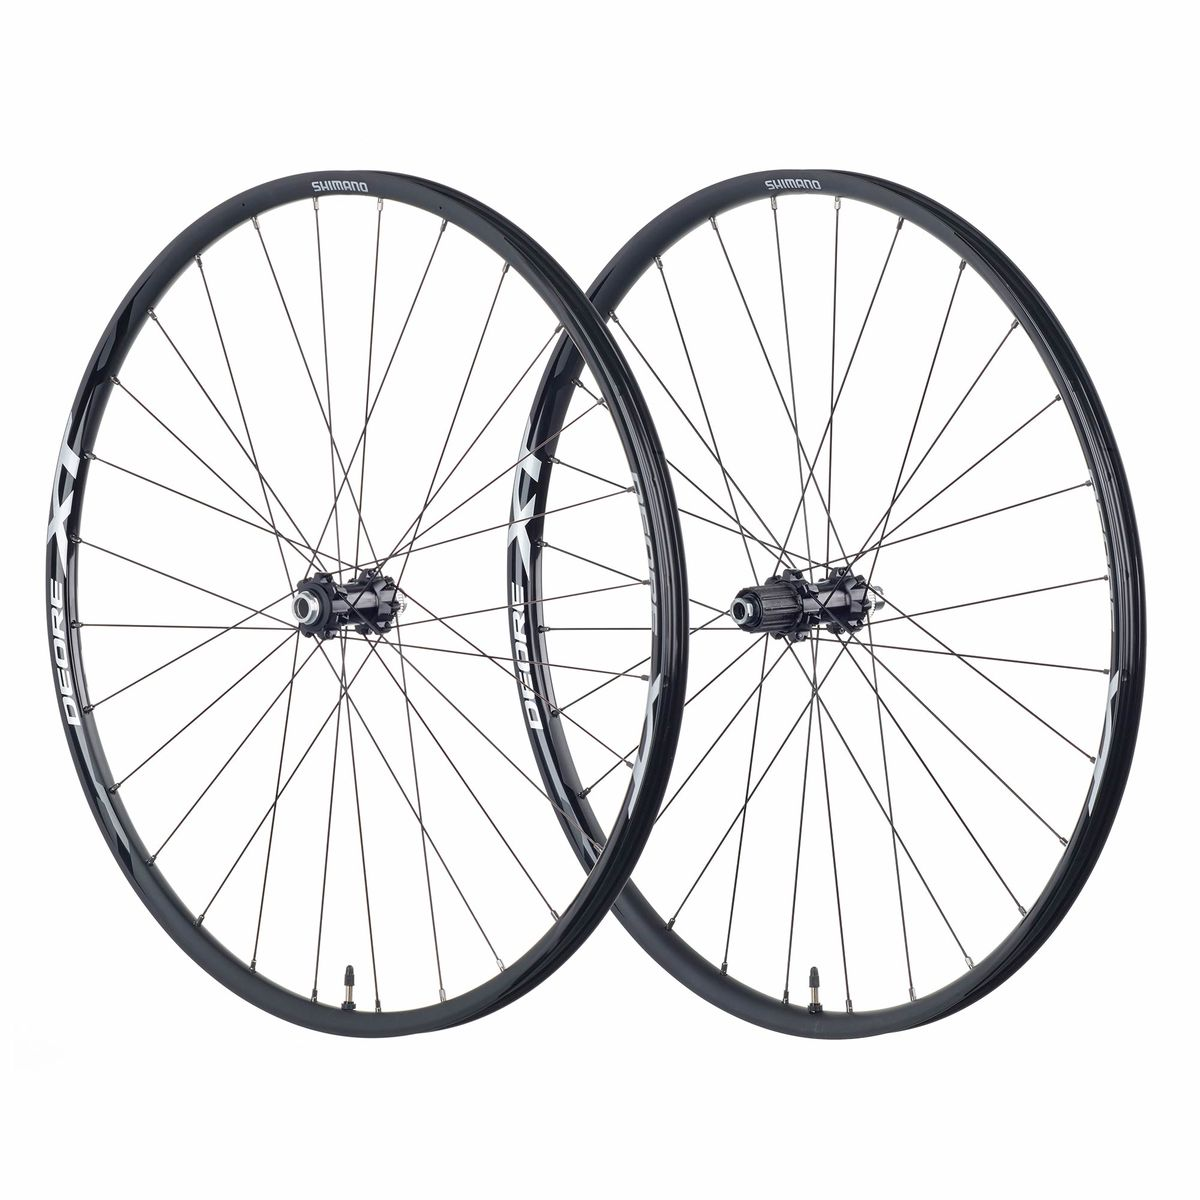 Deore XT WH-M8020 Disc MTB wheel set